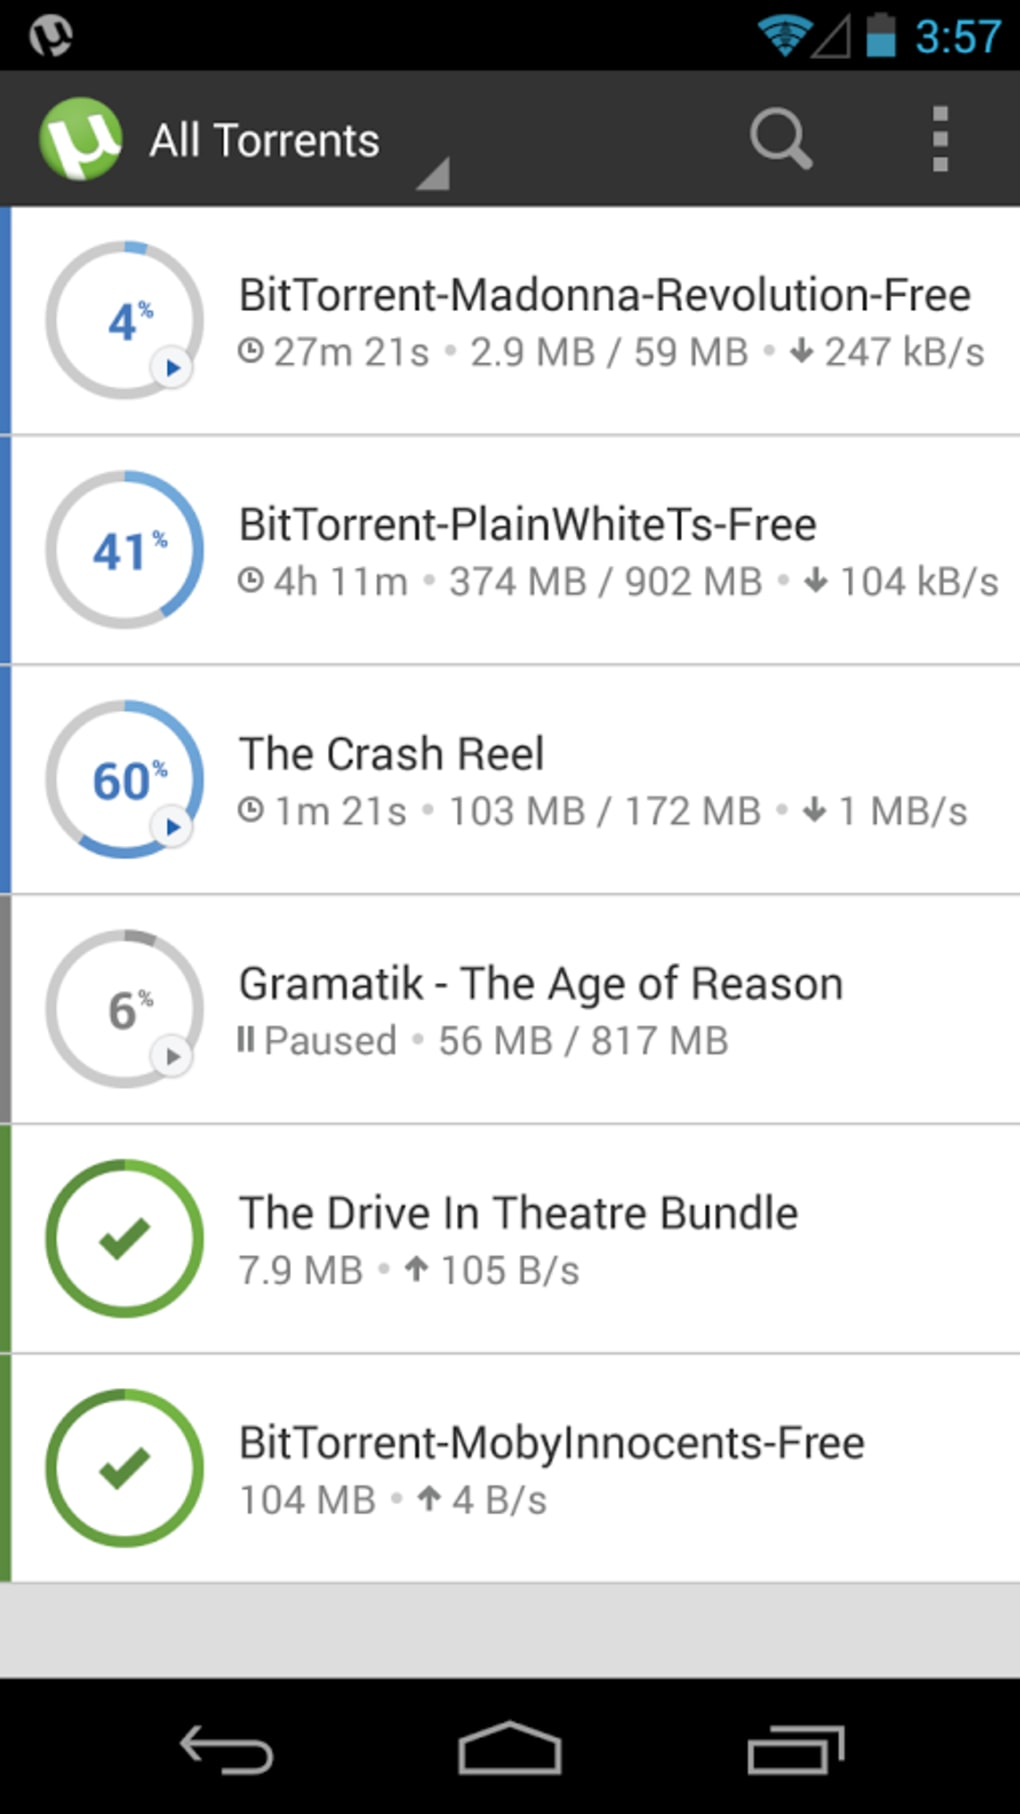 bittorrent app download for android mobile